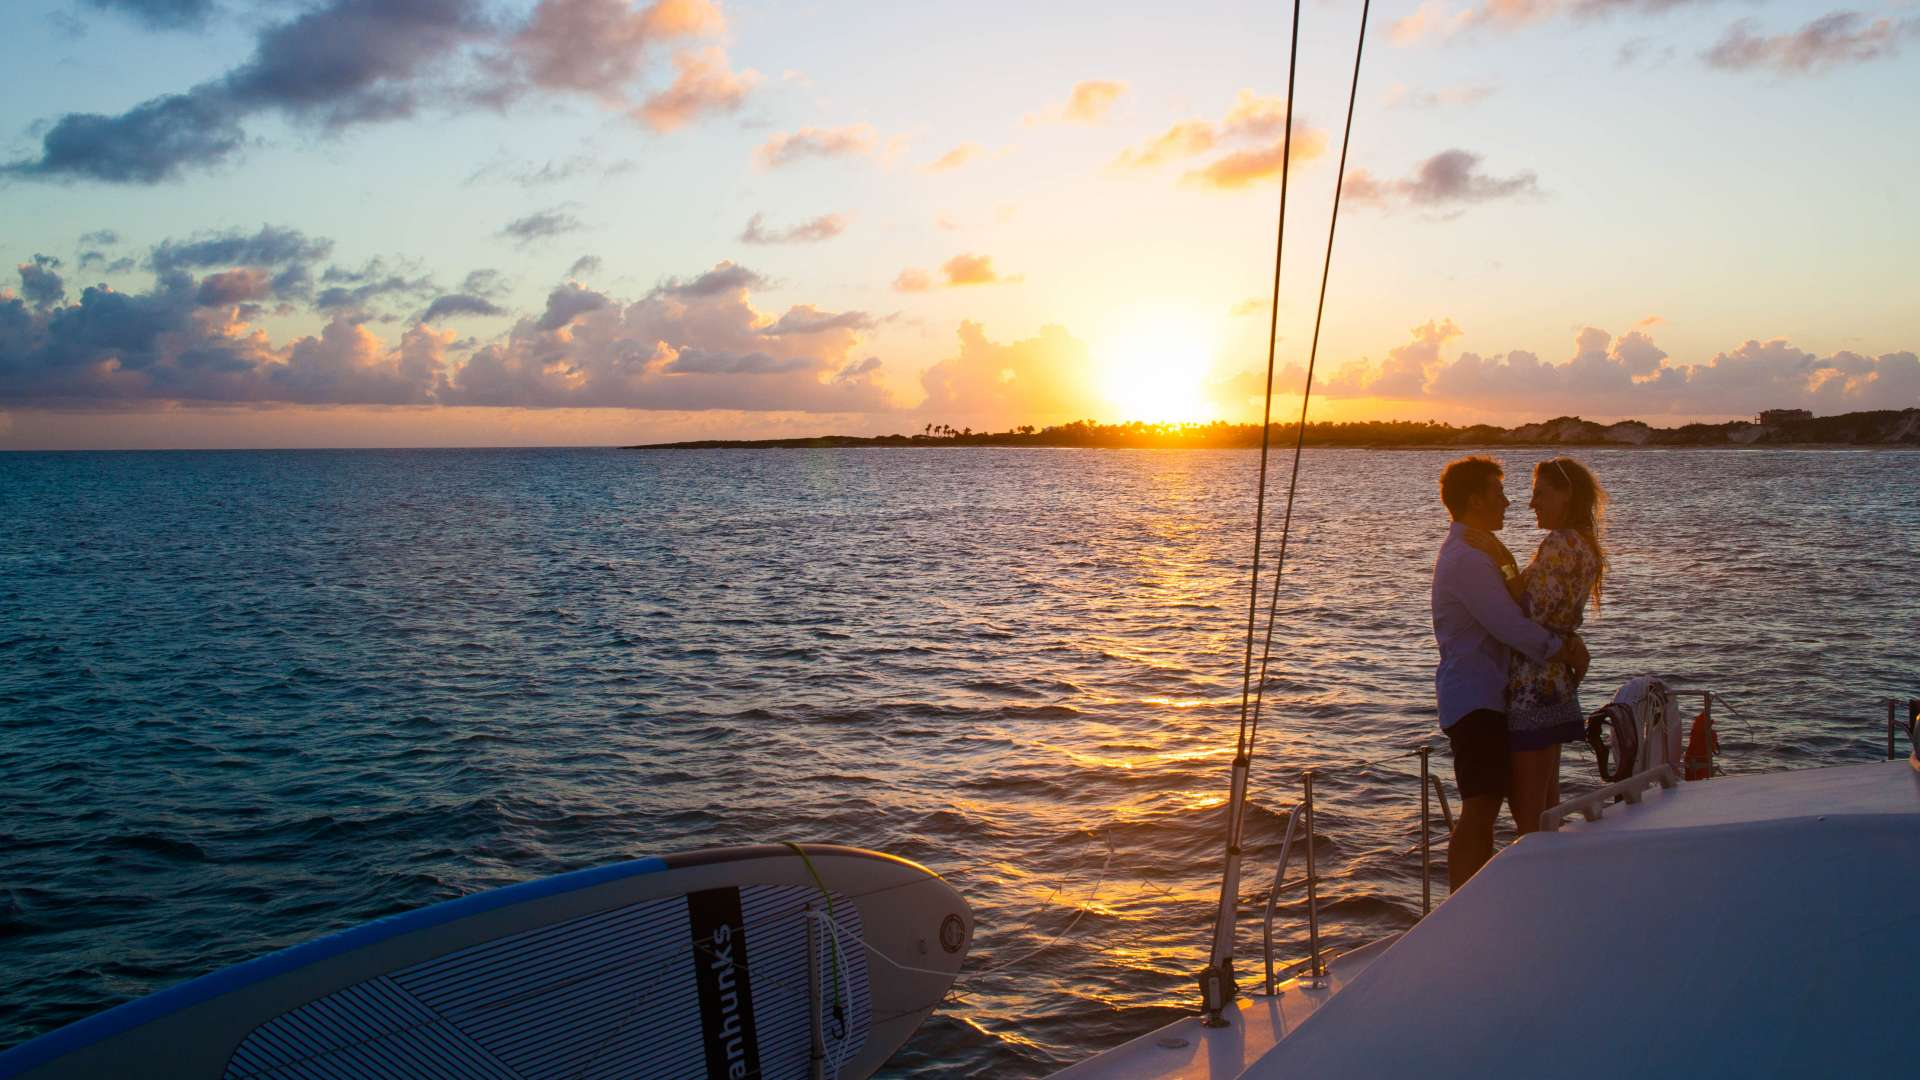 Sunset on the foredeck